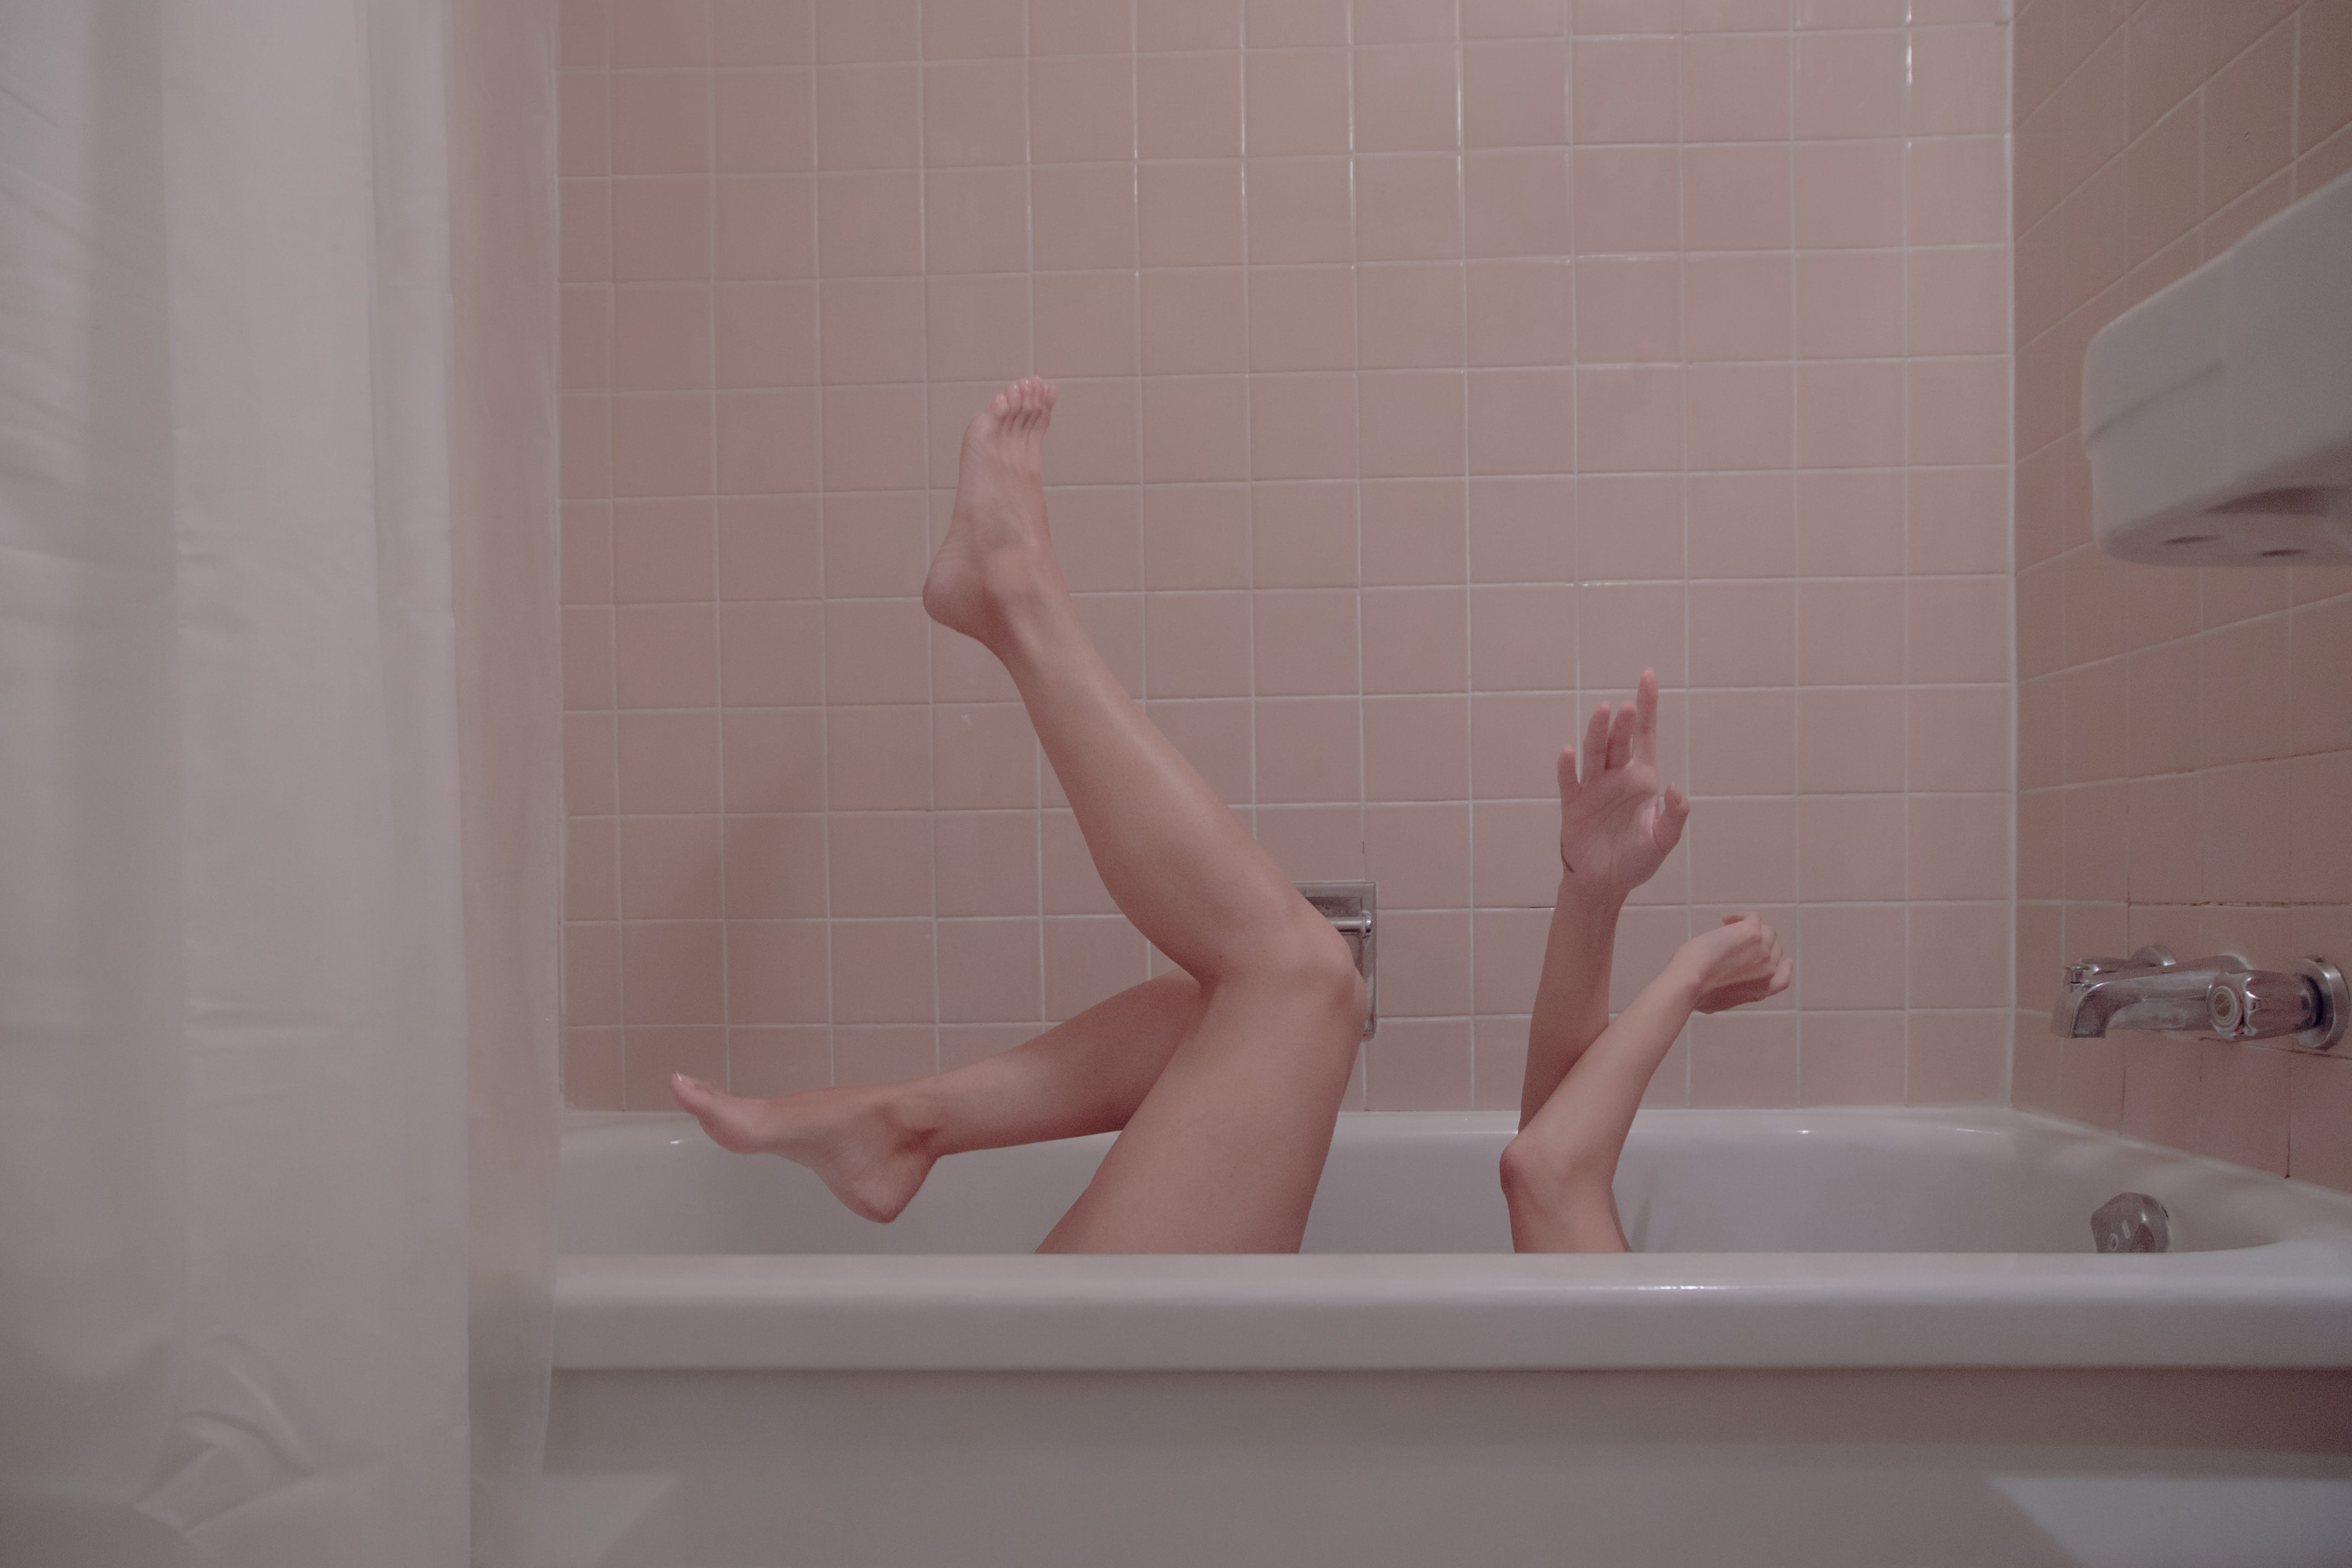 Woman's arms and legs protruding from white bathtub as she is on her back; image by Julieta Christy, via Unsplash.com.